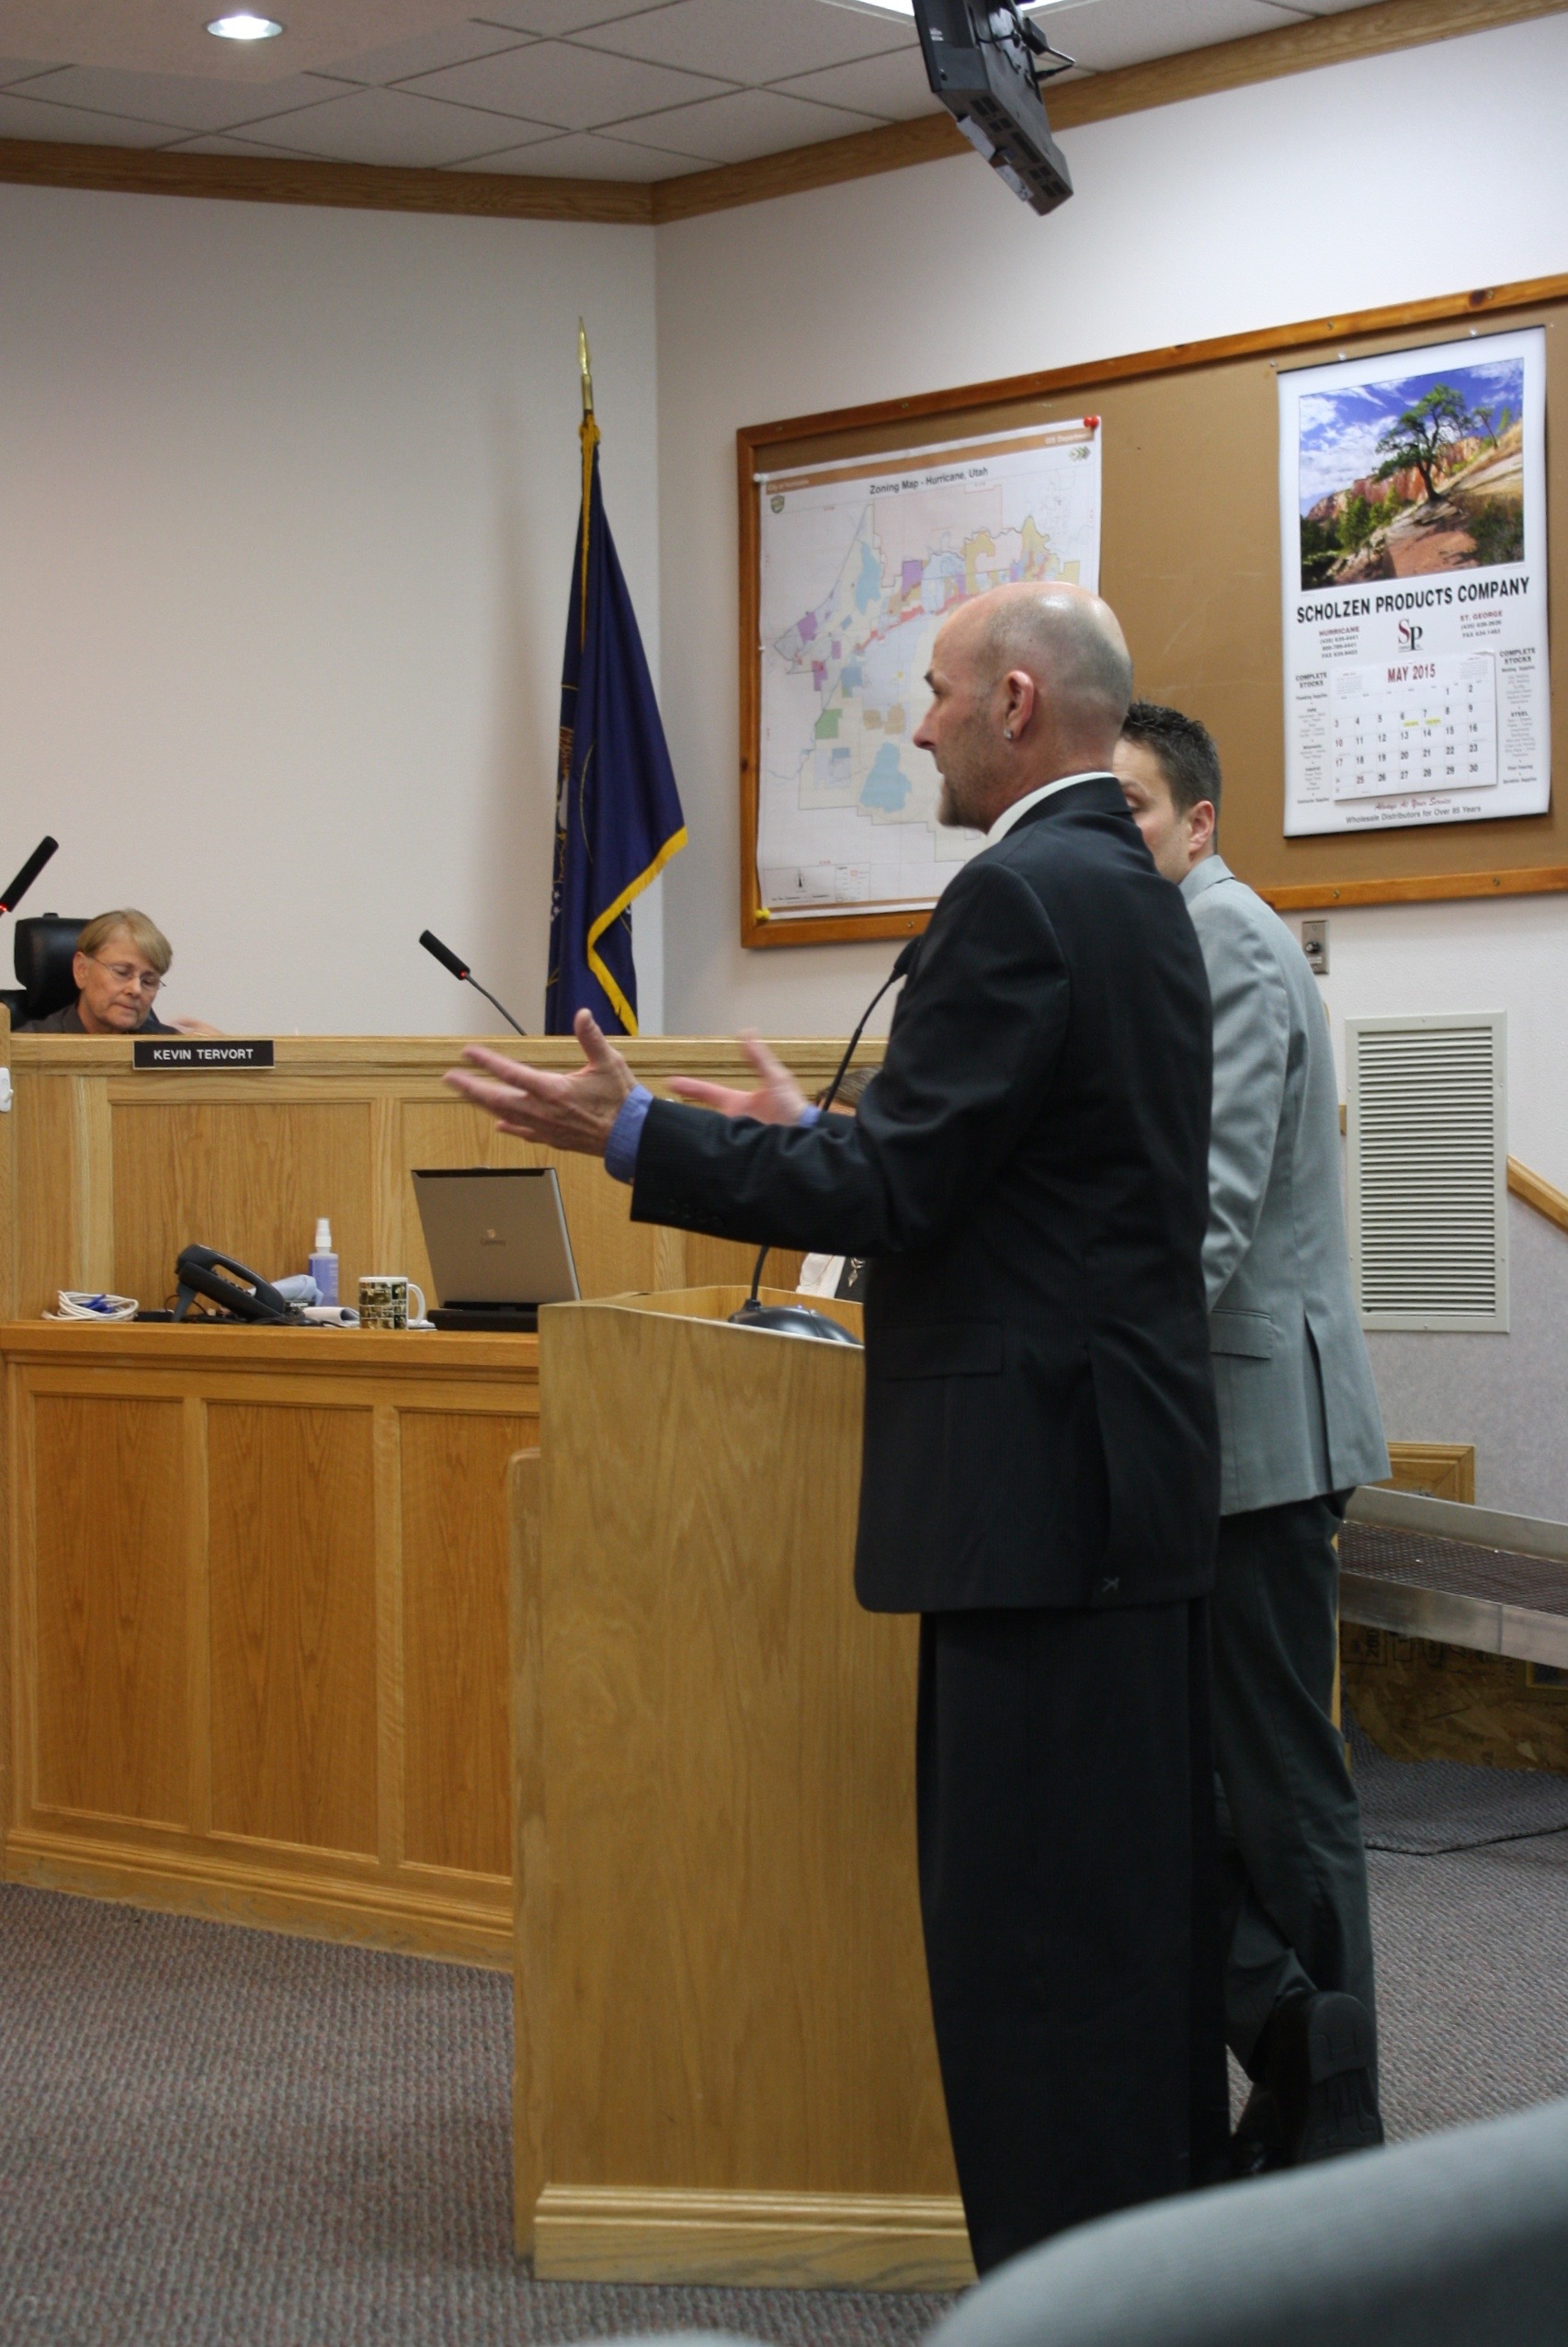 L front to back: Stephen Ward, owner of Barista's restaurant, with attorney Eric Carson, addressing the Hurricane City Council , requesting a hard-alcohol liquor license, Hurricane City Council Chambers, Hurricane, Utah, May 7, 2015 | Photo by Reuben Wadsworth, St. George News